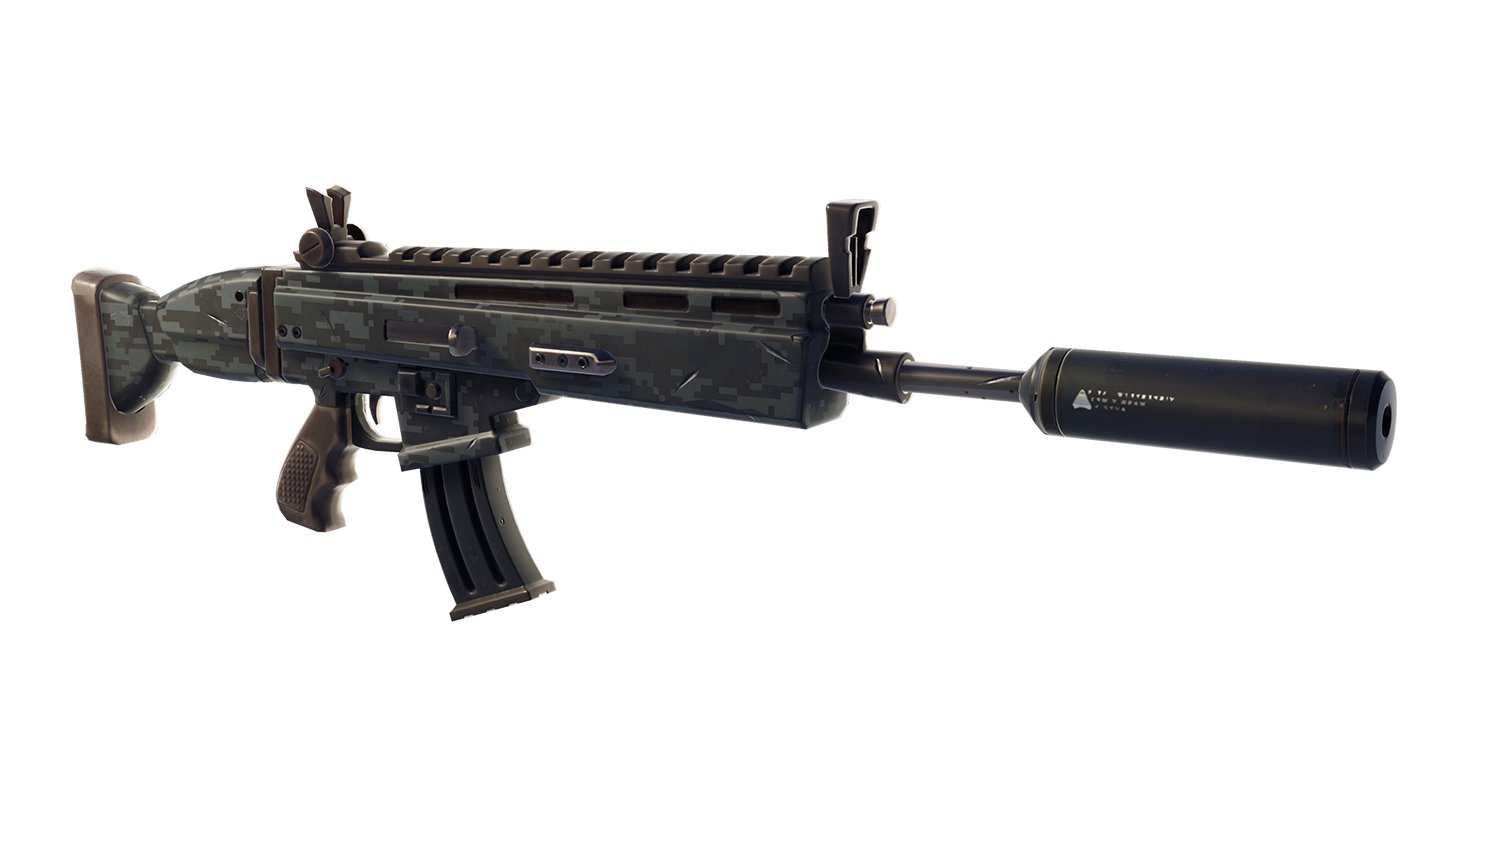 Scar PNG, Fortnite Scar Free Download Clipart Images.